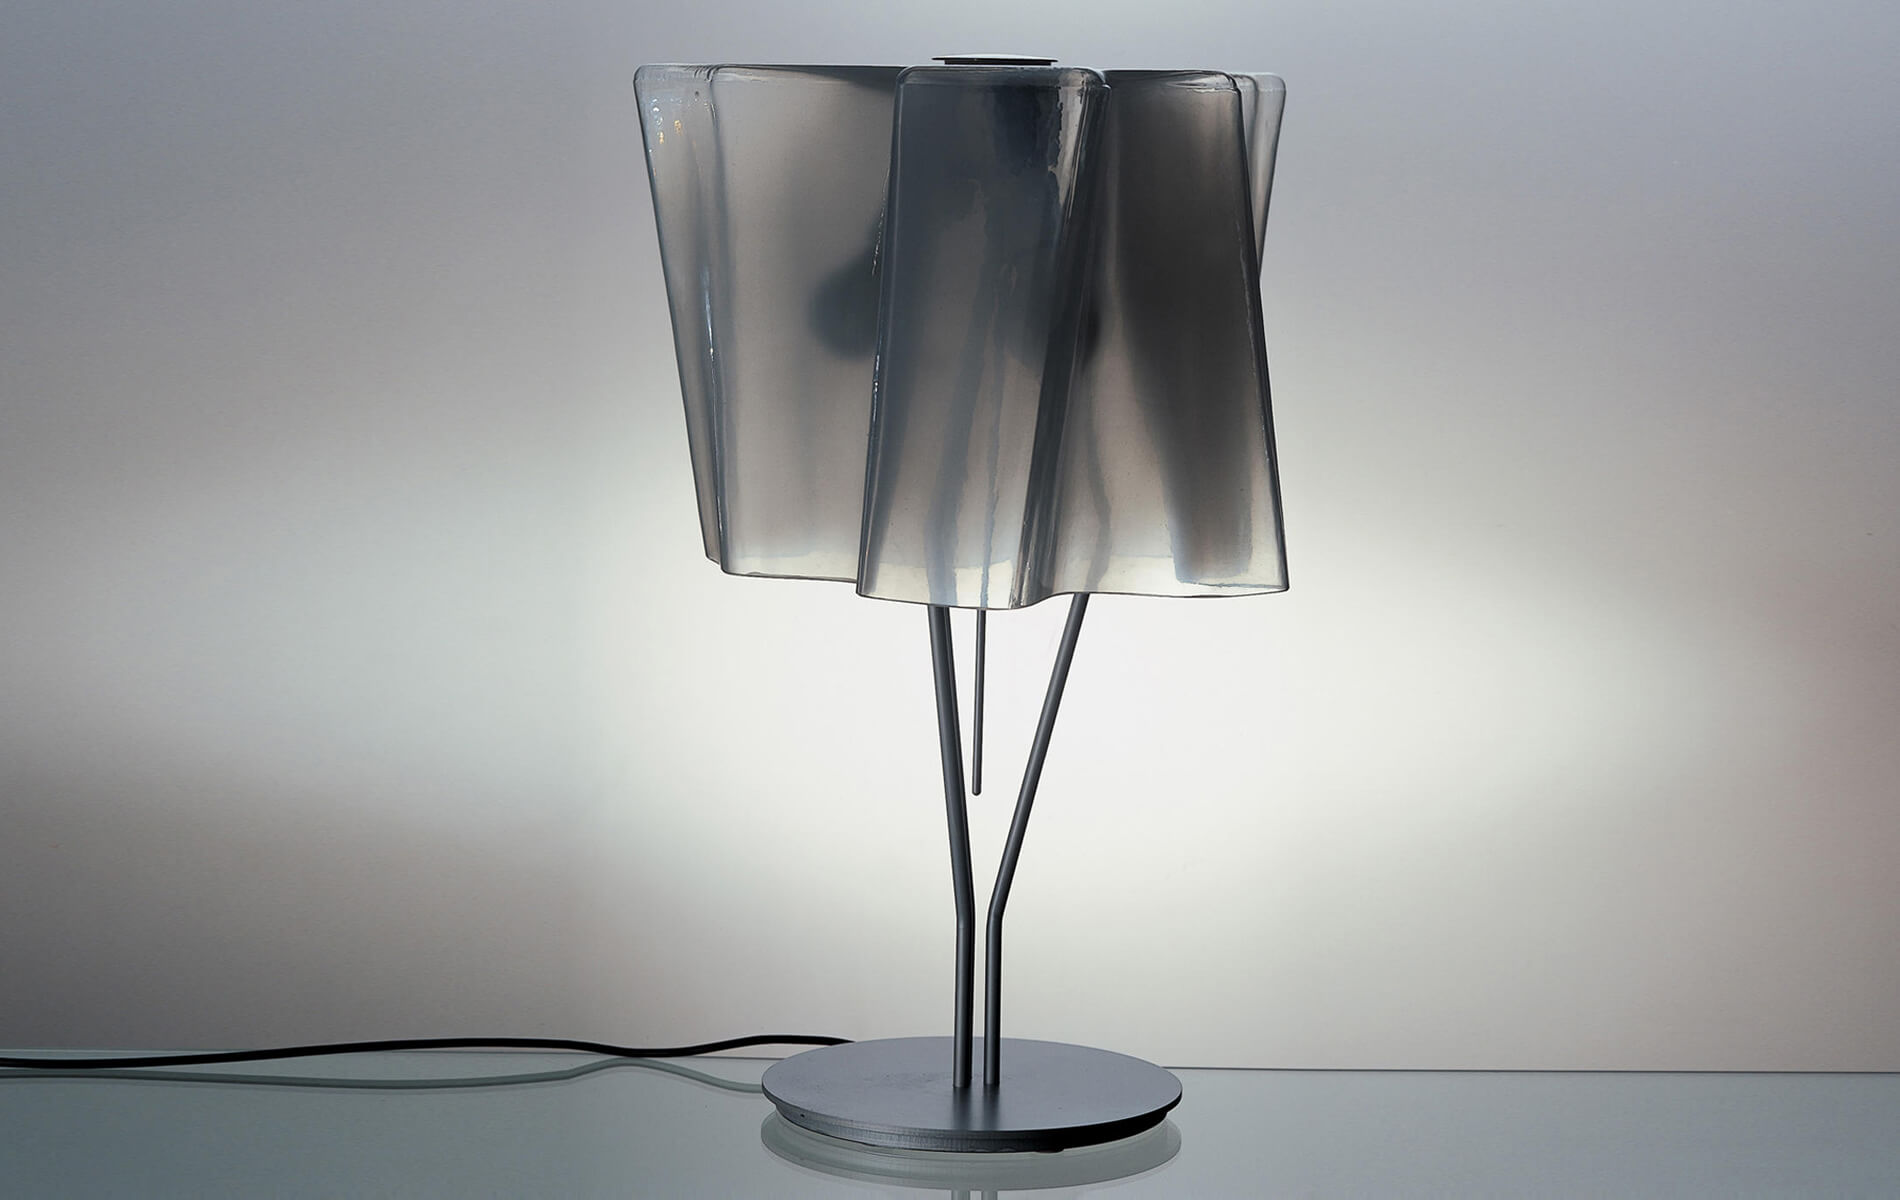 More information of Artemide LOGICO table lamp